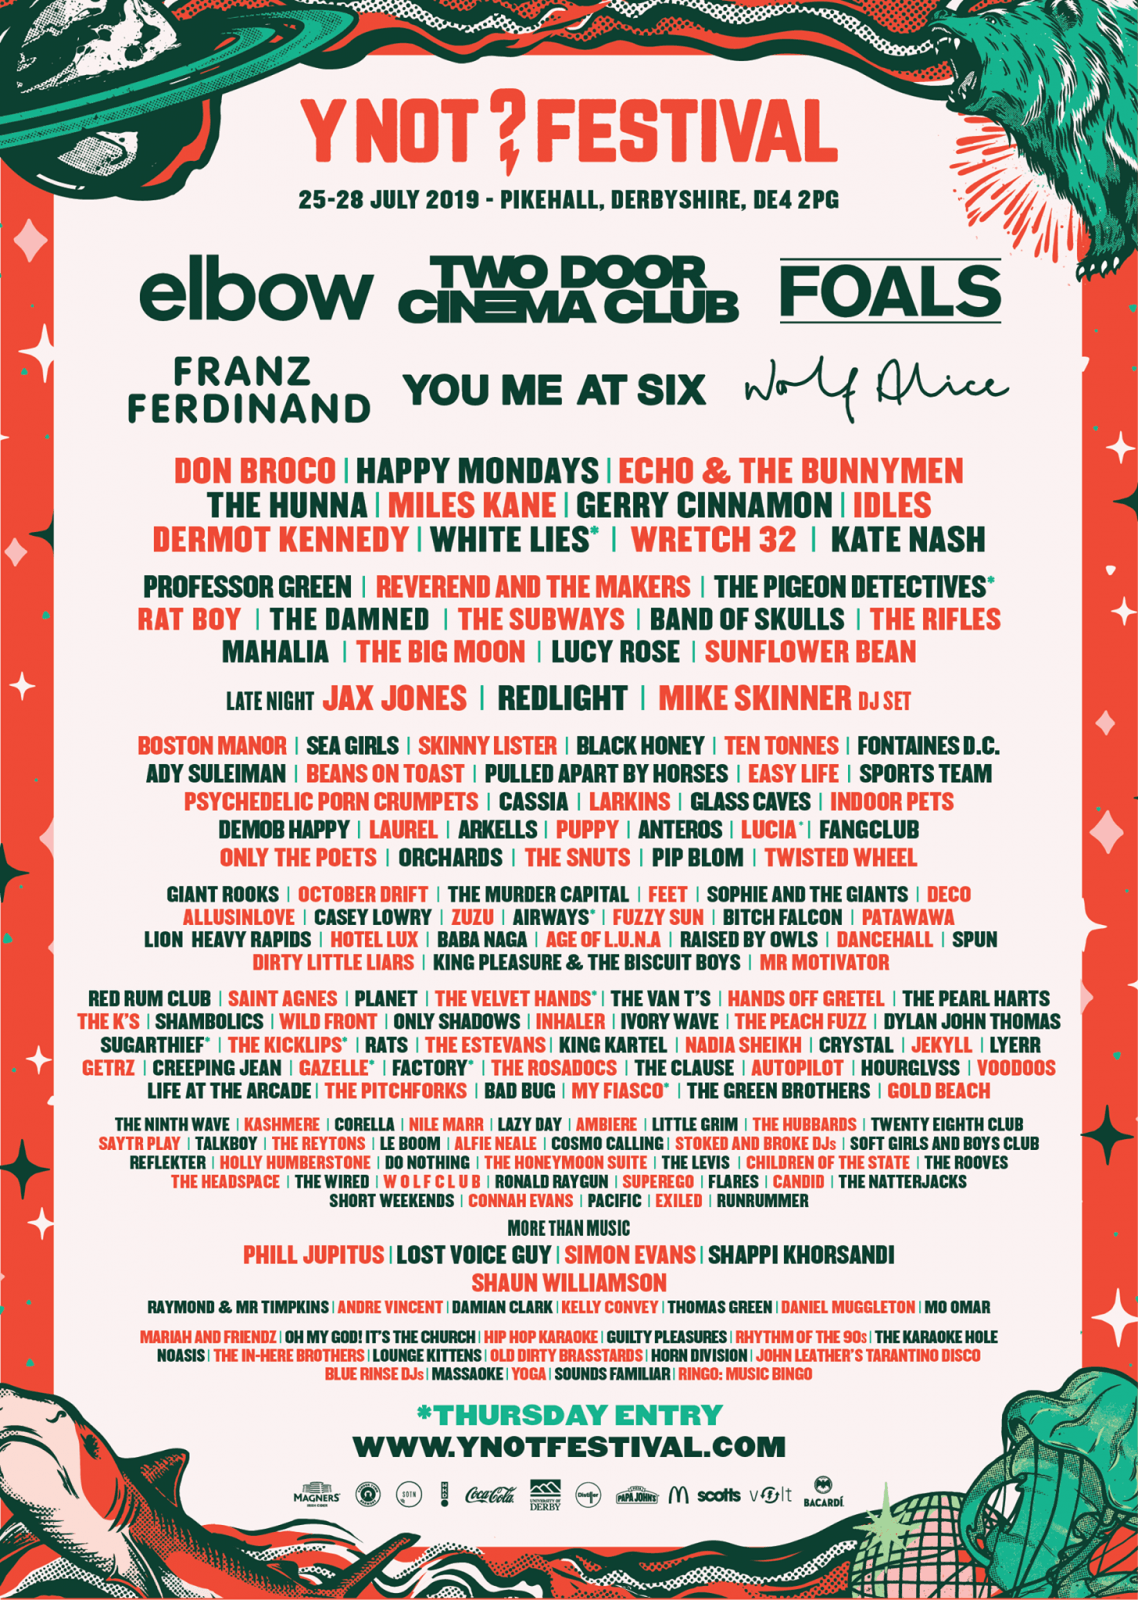 THE Y NOT 2019 LINE UP IN ALL ITS GLORY...